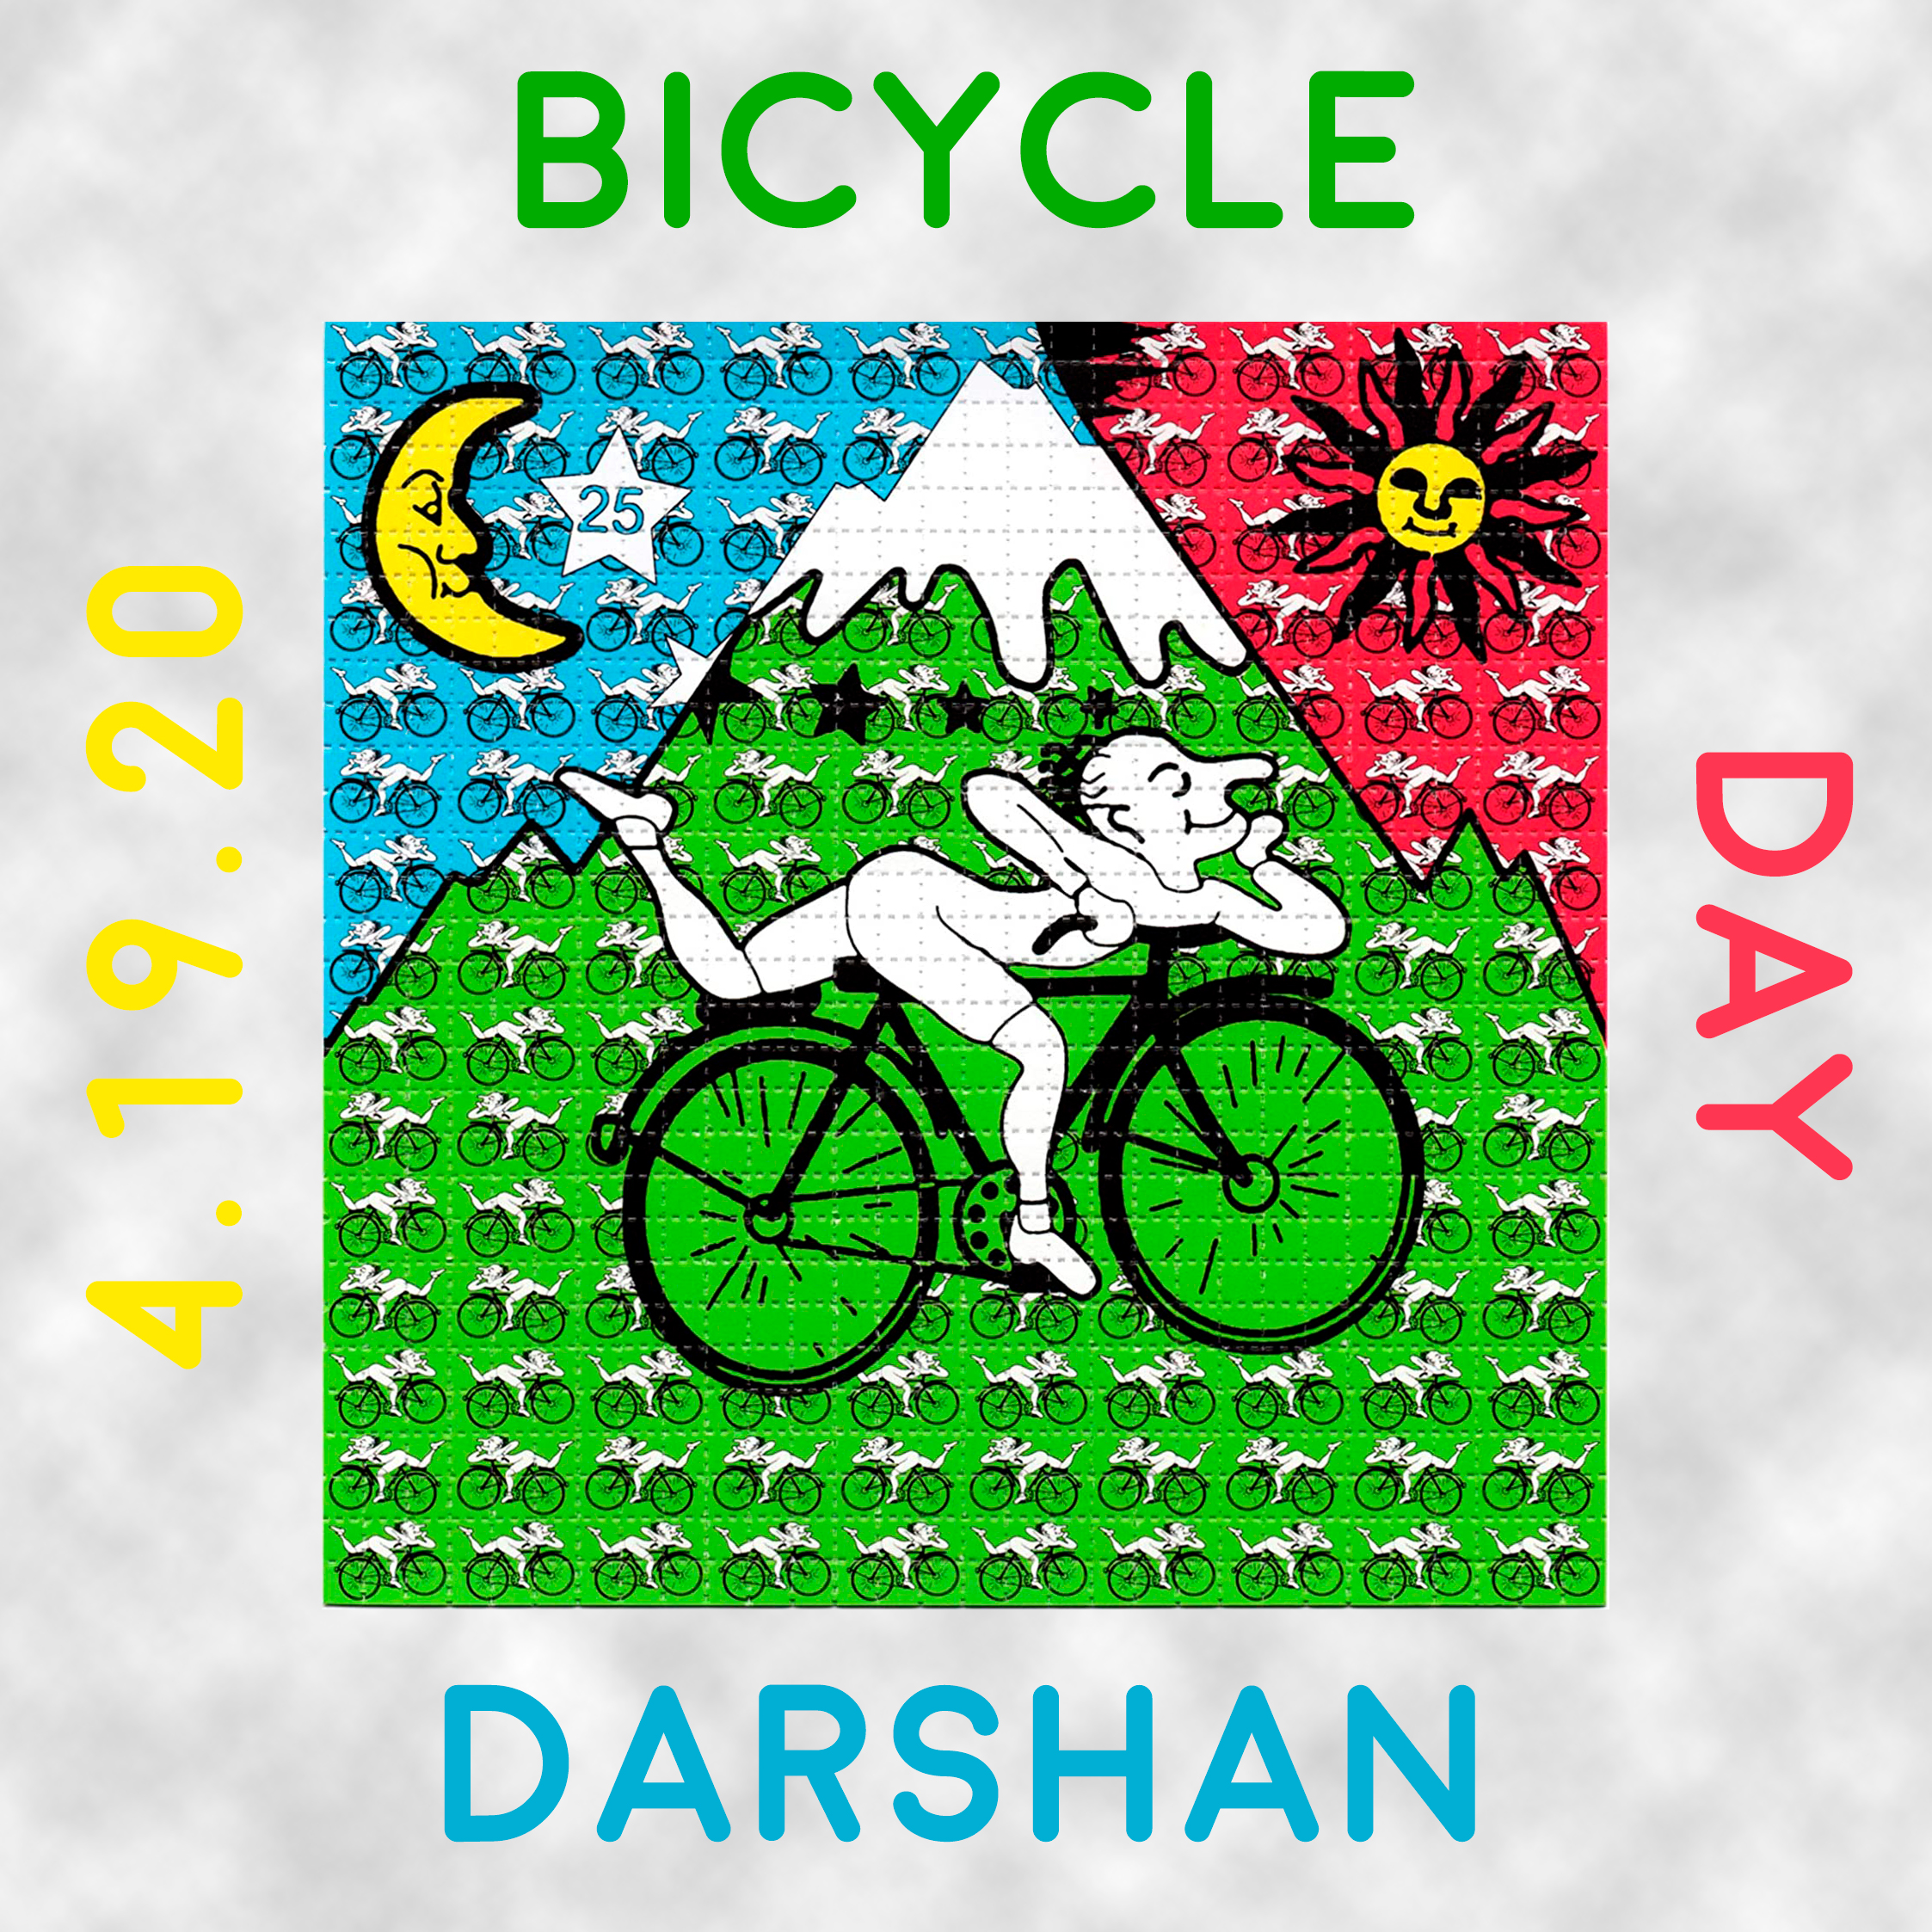 Bicycle-Day-Darshan